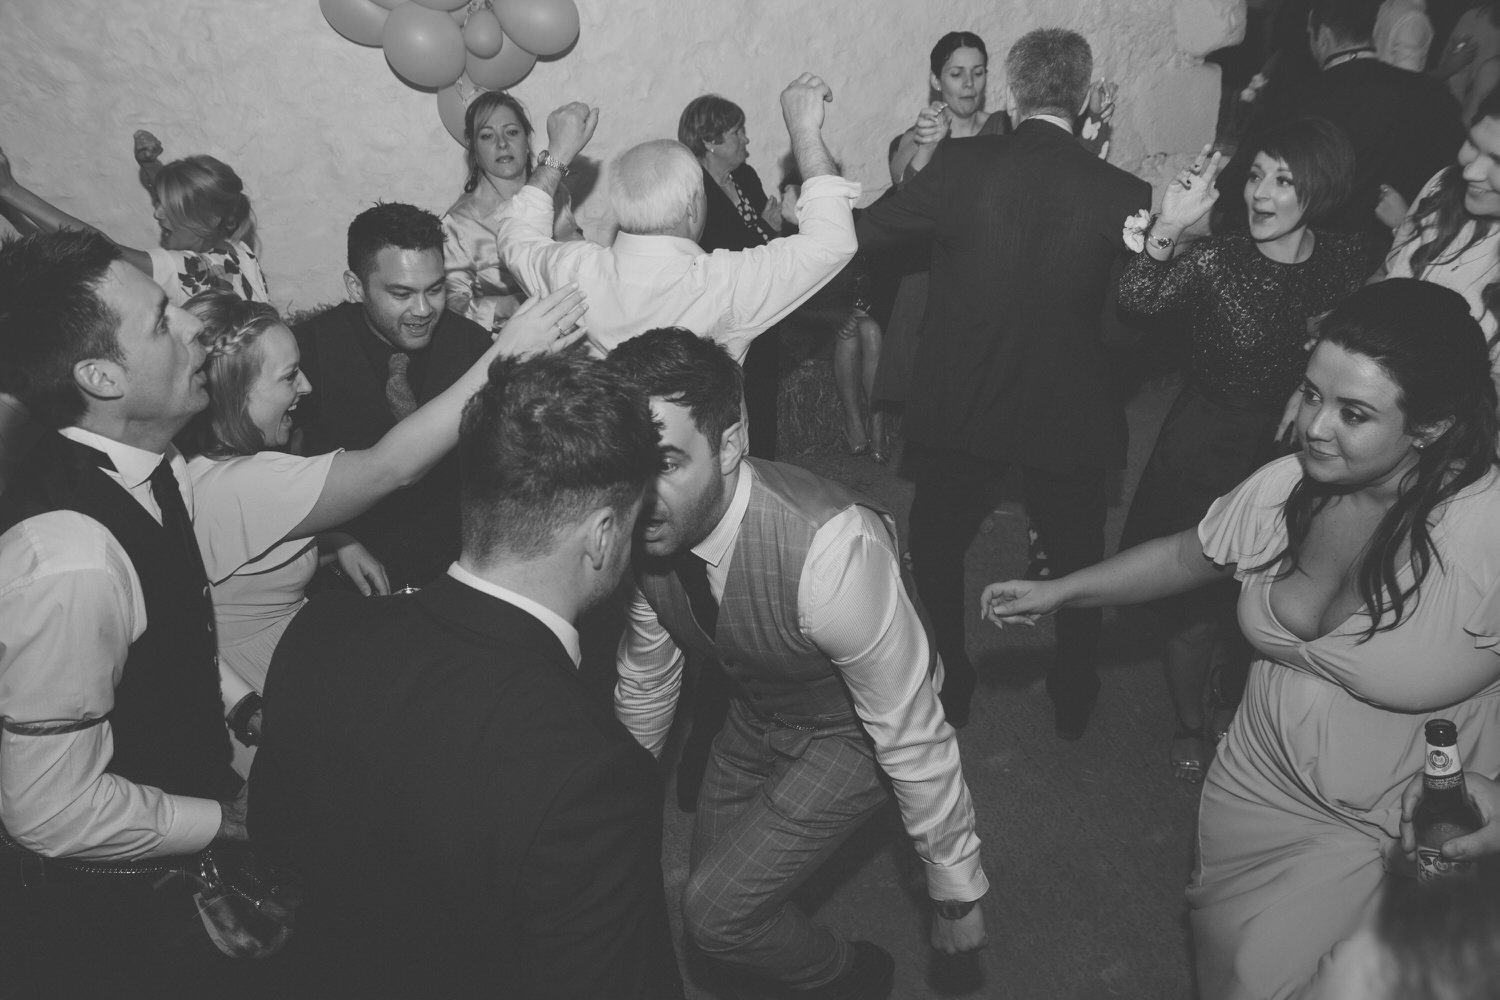 alternative_photographer_wedding_uk_mirrorbox_091.jpg